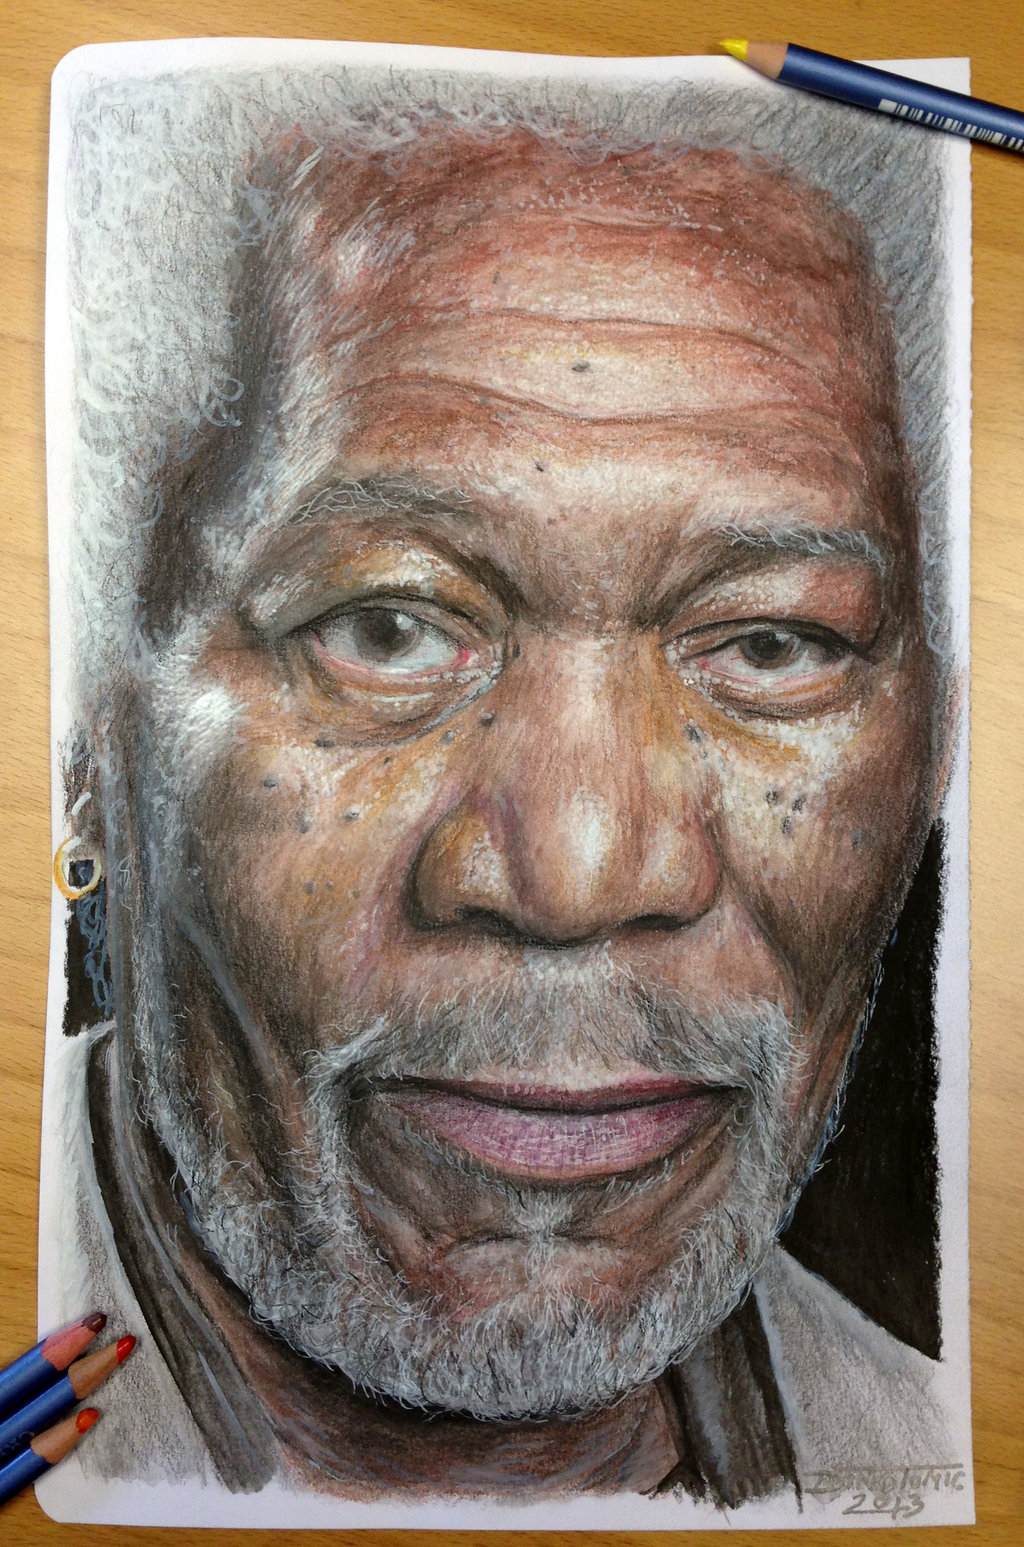 Drawn portrait colored pencil Portraits Pencil color 04 old